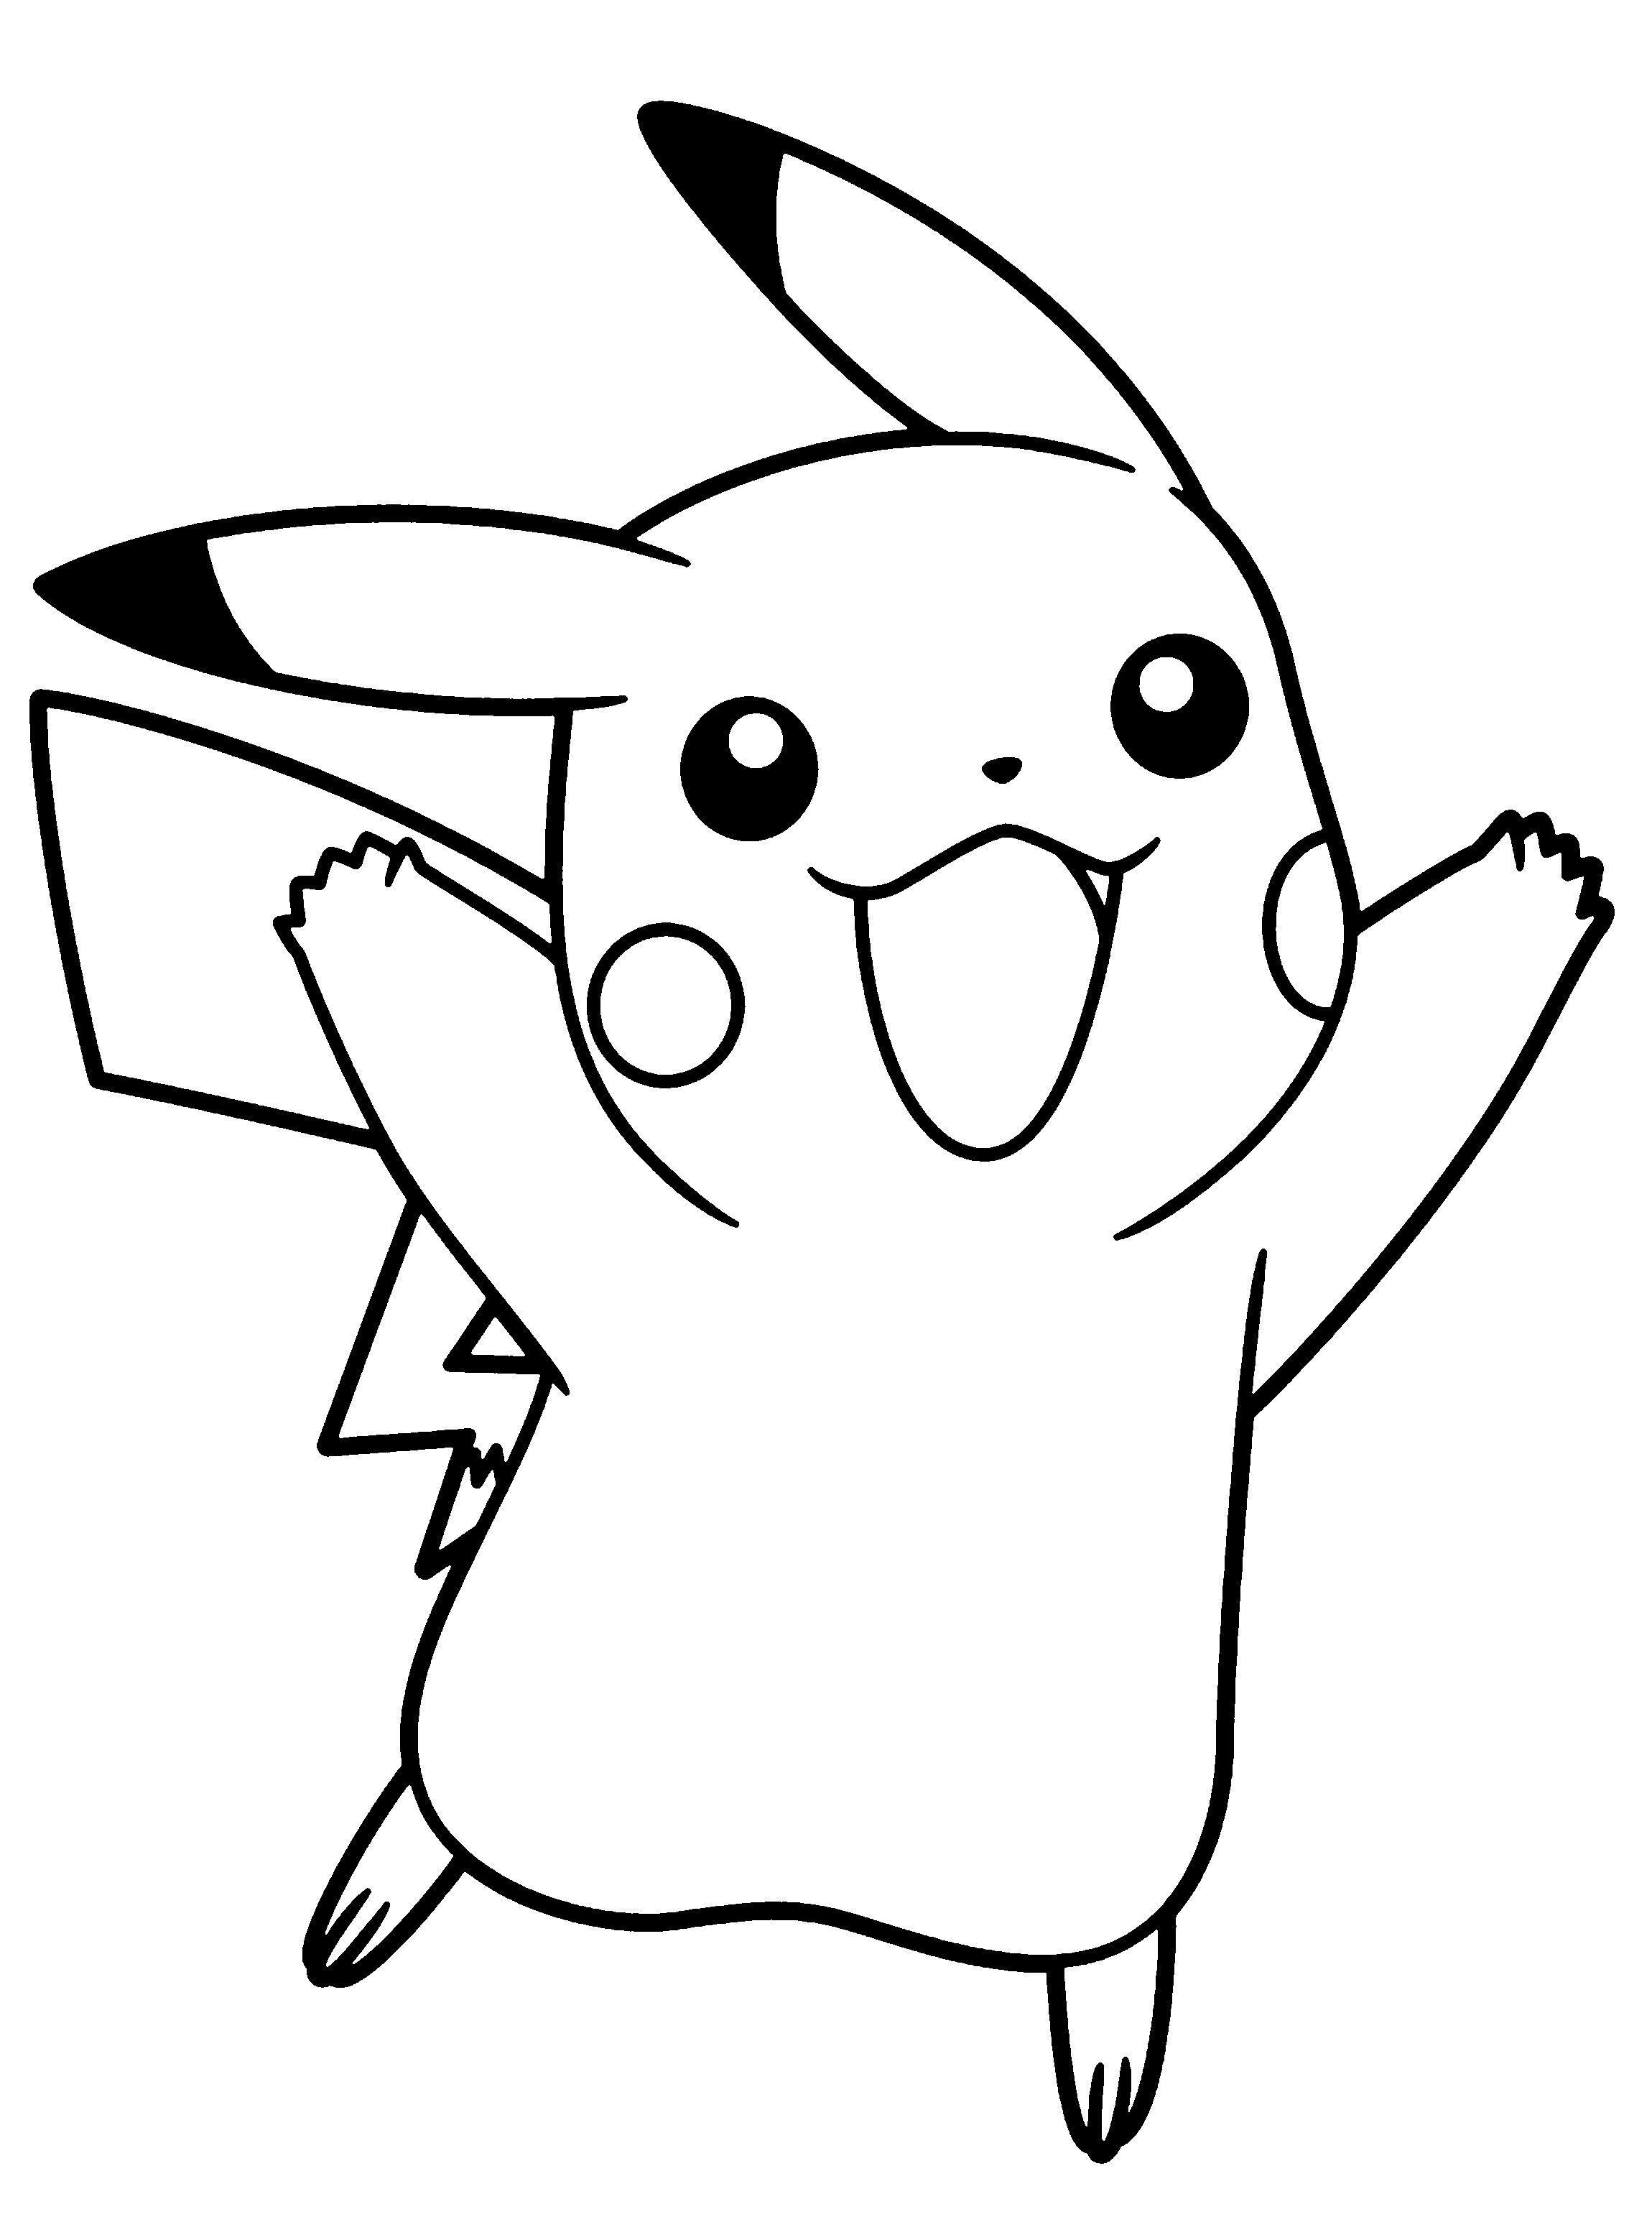 10 Pikachu Coloring Books Pikachu Coloring Pages Printable Pikachu Coloring Pages Printable Fr Pokemon Coloring Pikachu Coloring Page Pokemon Coloring Pages